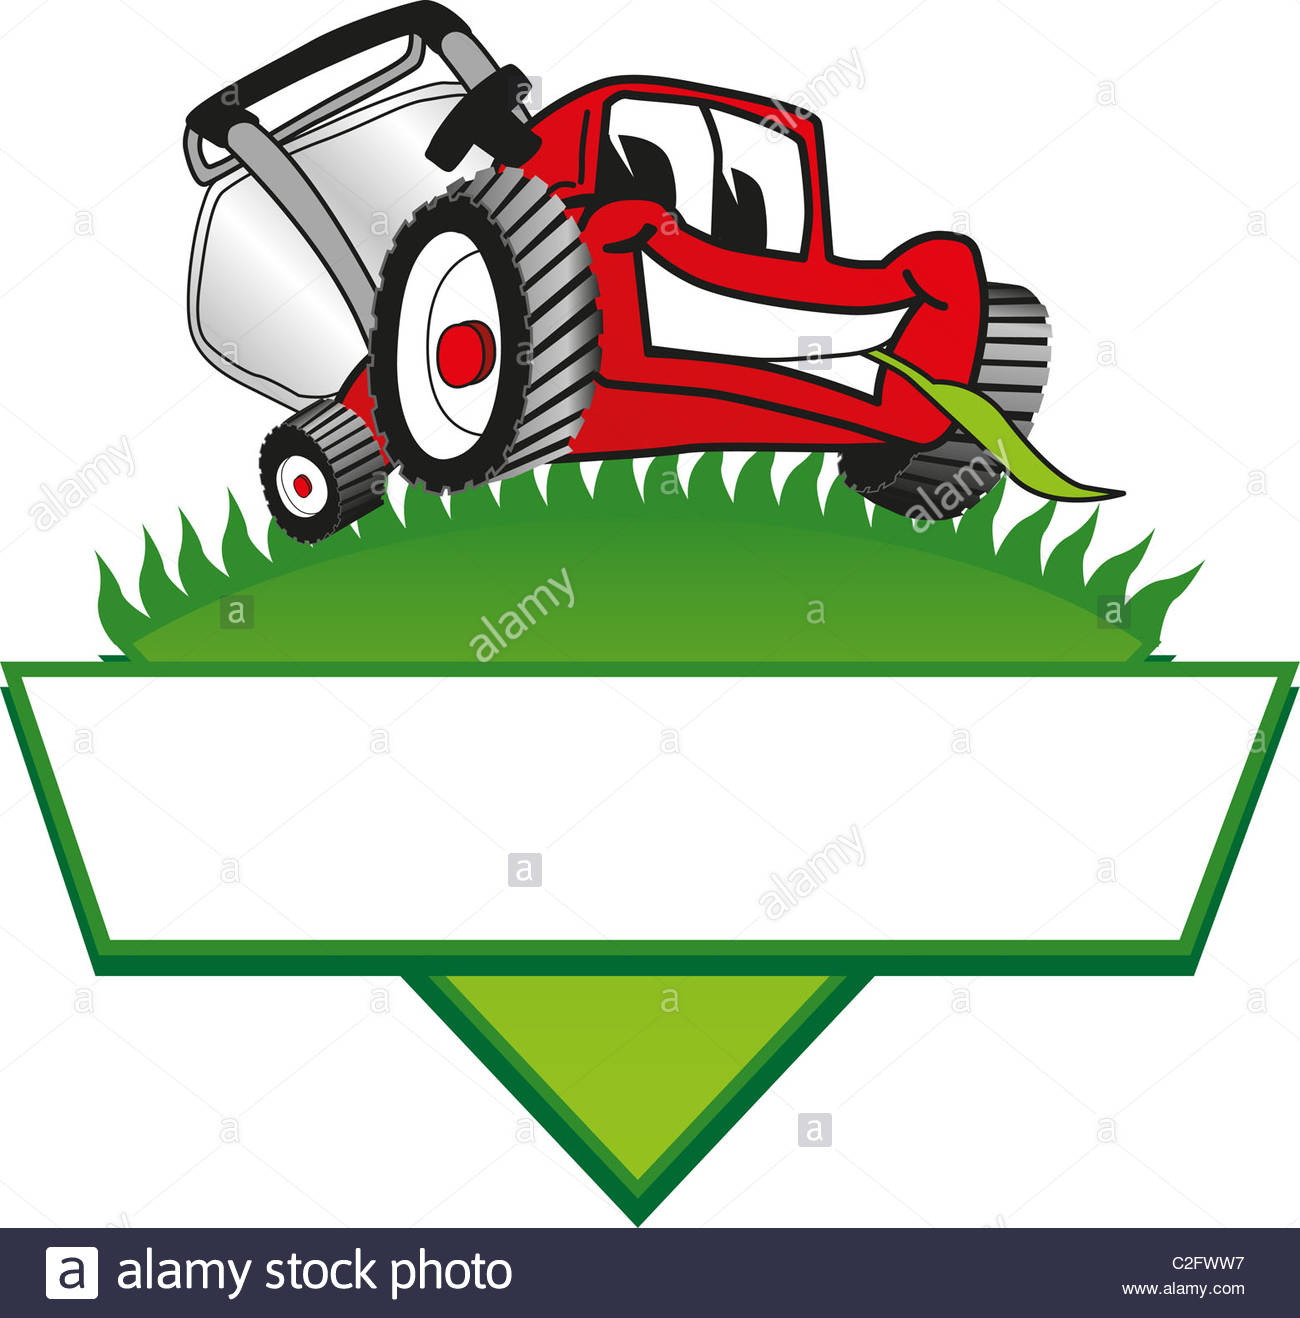 1300x1318 Mower Clipart Stock Photos Amp Mower Clipart Stock Images